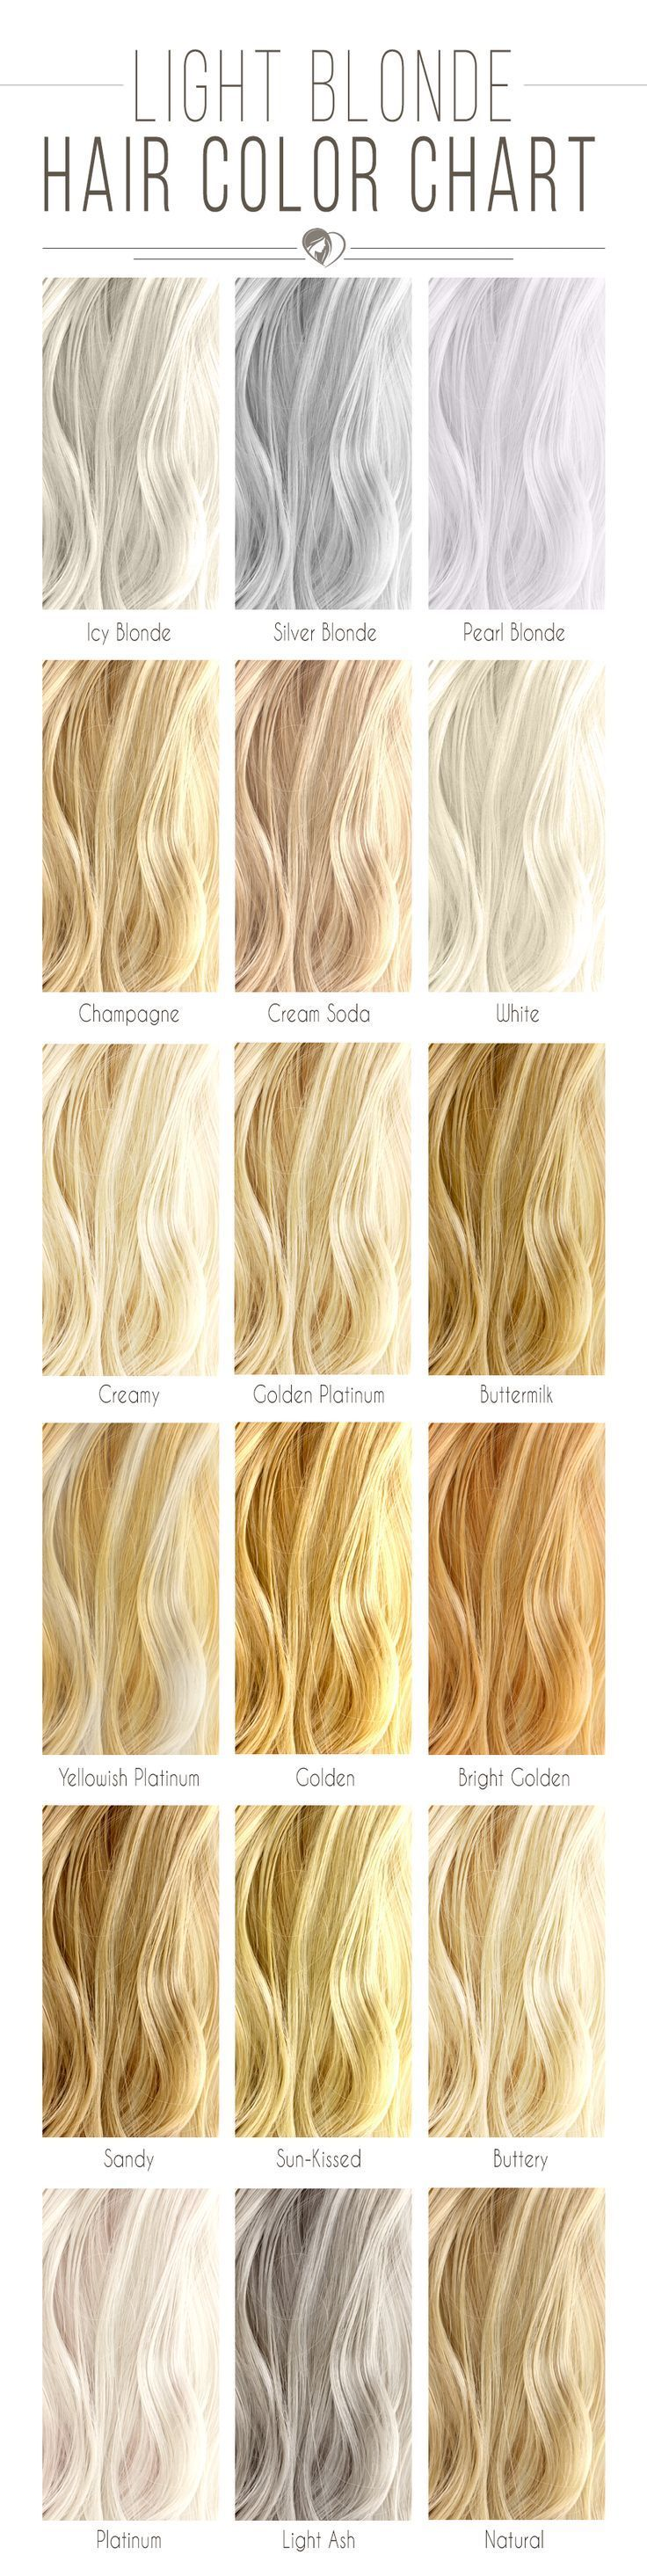 What Shade Of Blonde Hair Color Chart Suits You Best? ❤️  Let's see how di...